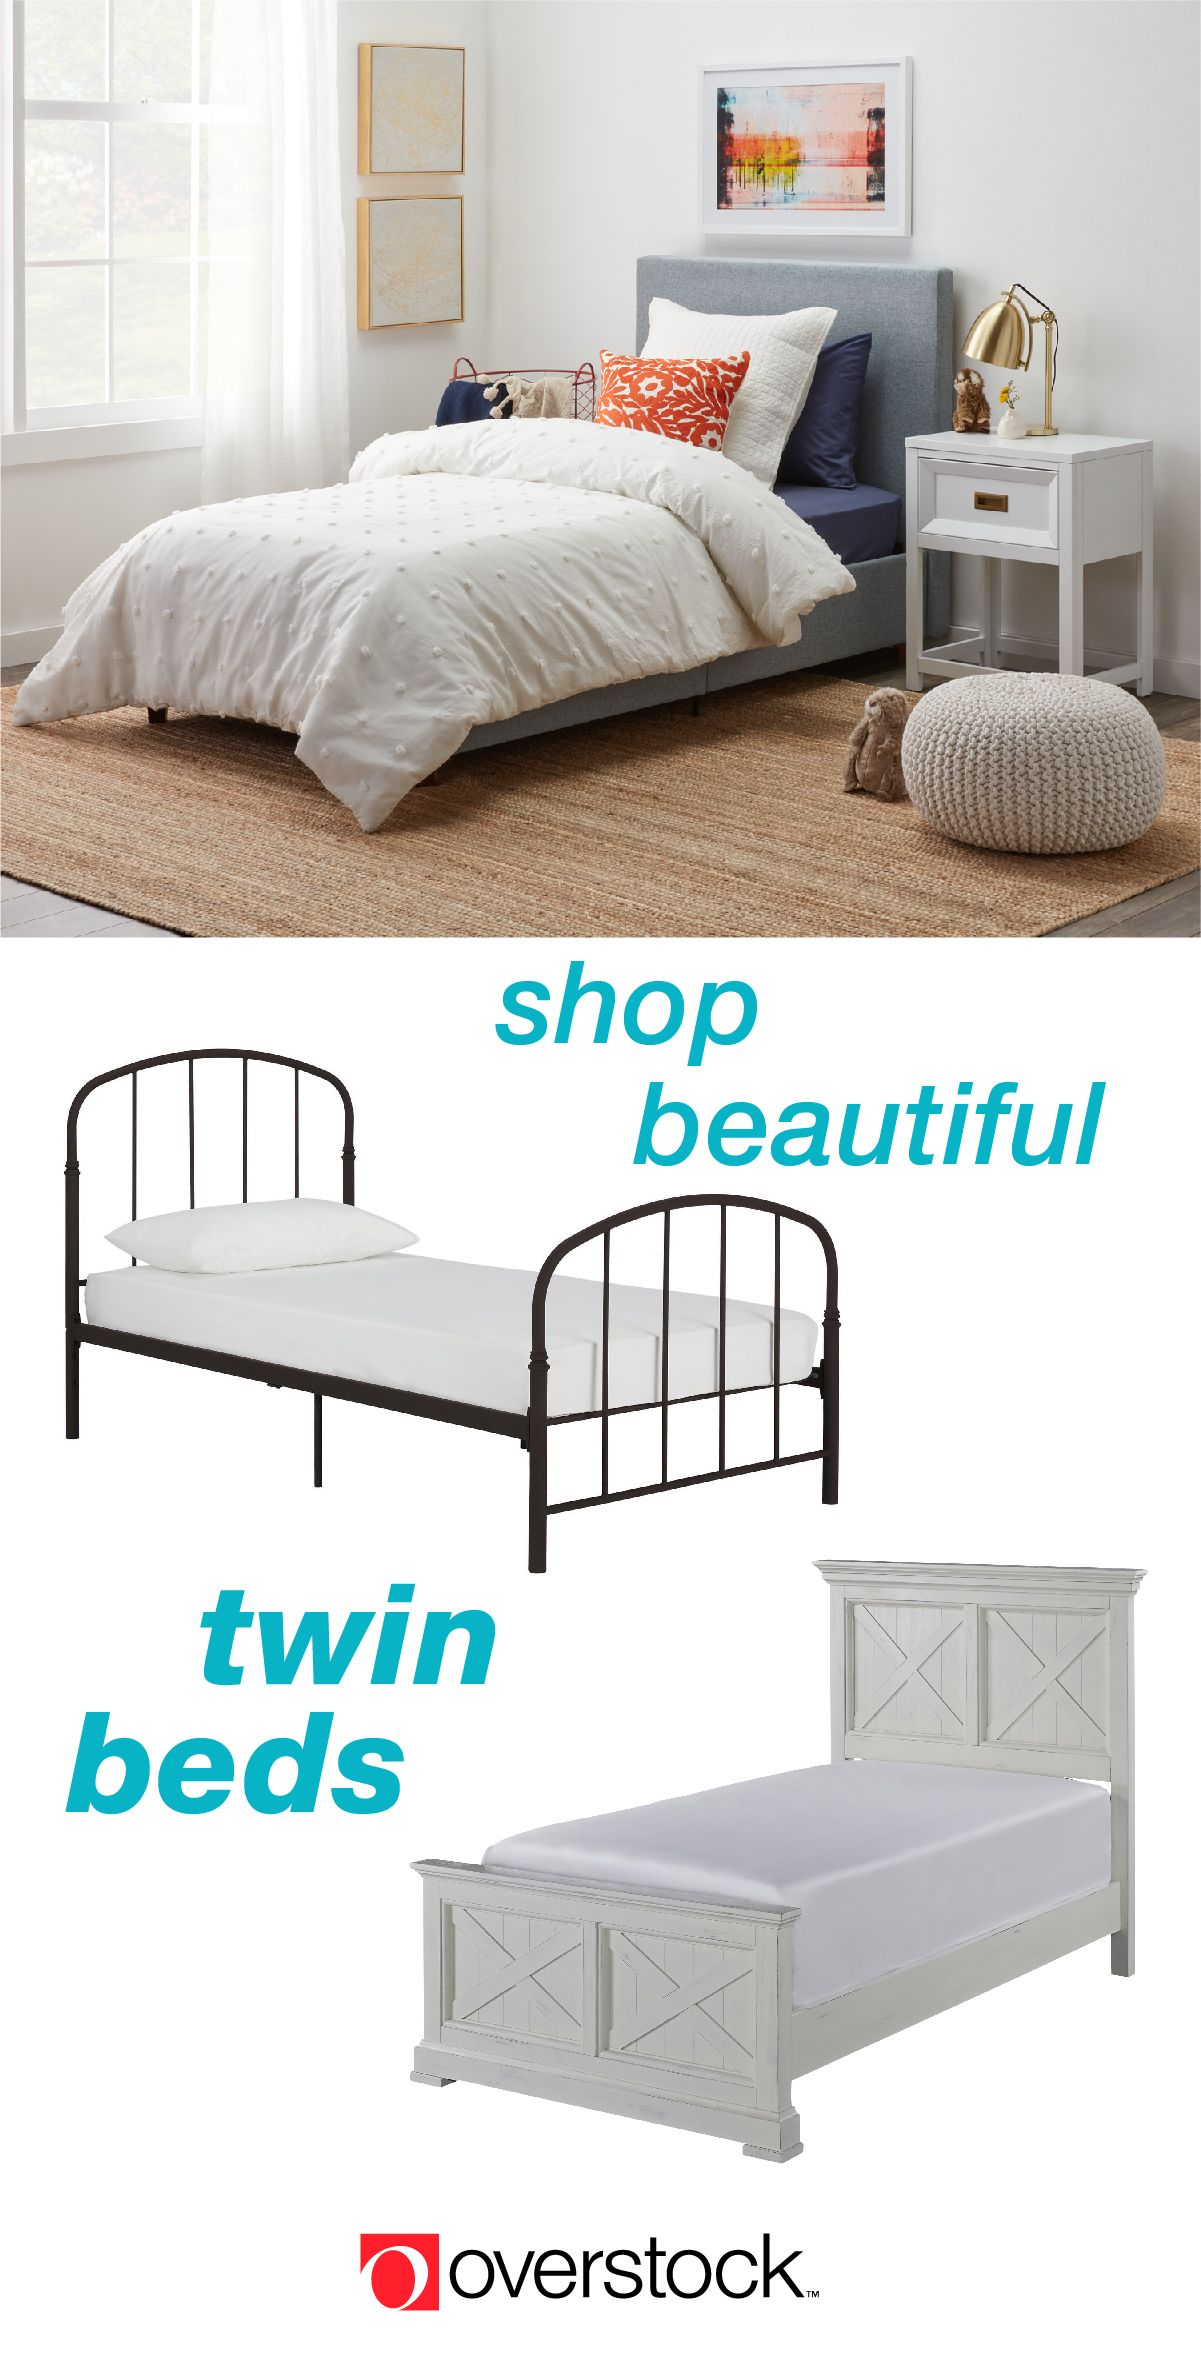 Browse An Impressive Selection Of Stylish Bedroom Furniture At